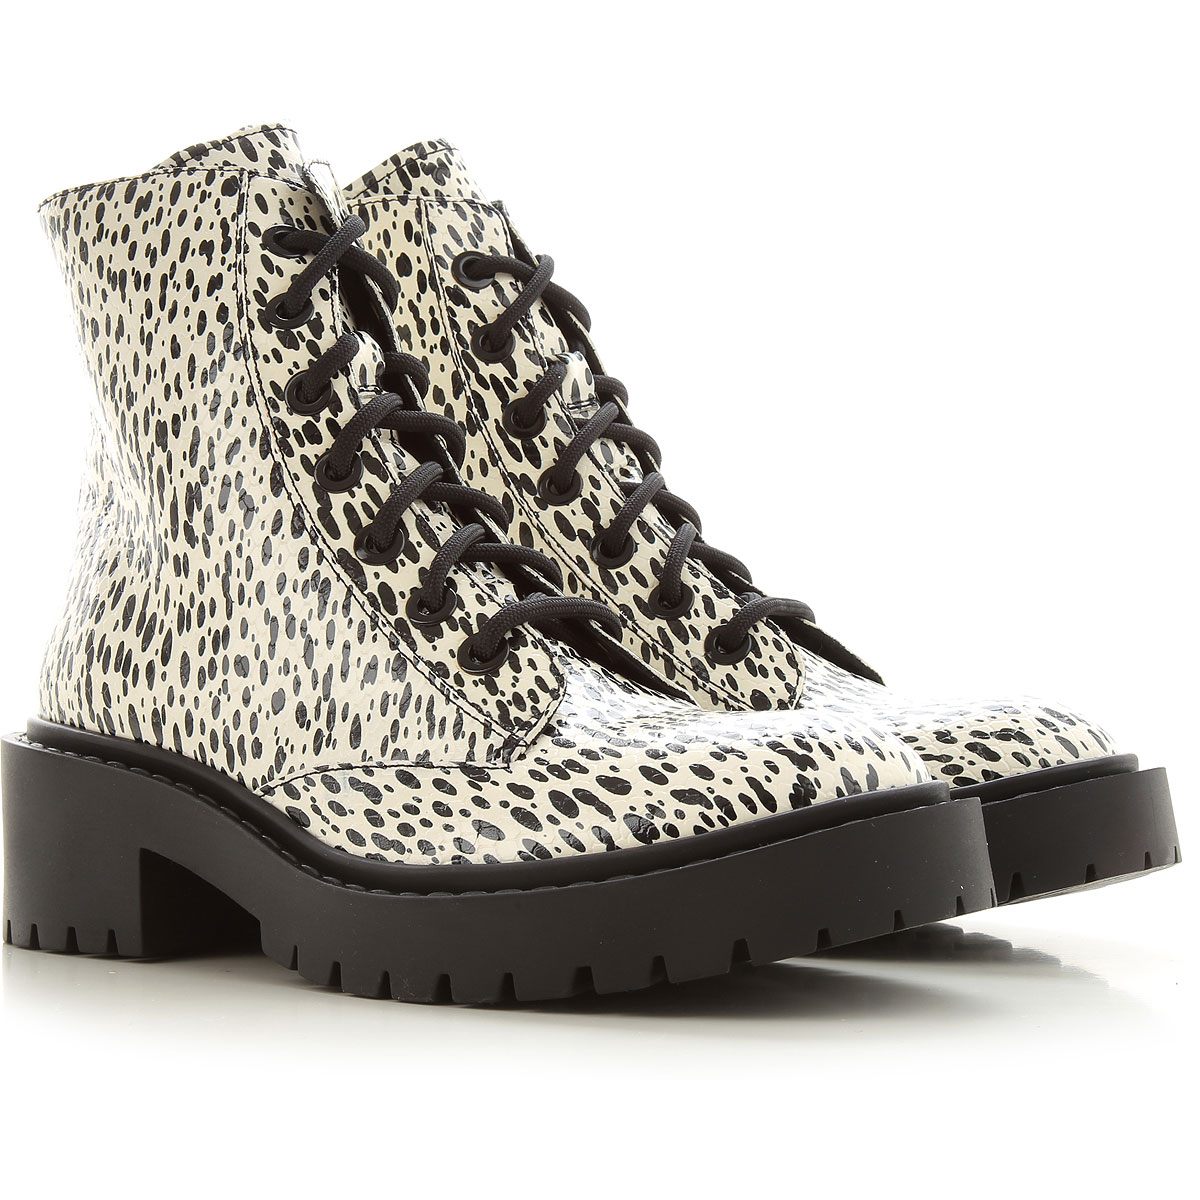 Kenzo Boots for Women, Booties On Sale, Ecru, Leather, 2019, 10 6 7 8 9